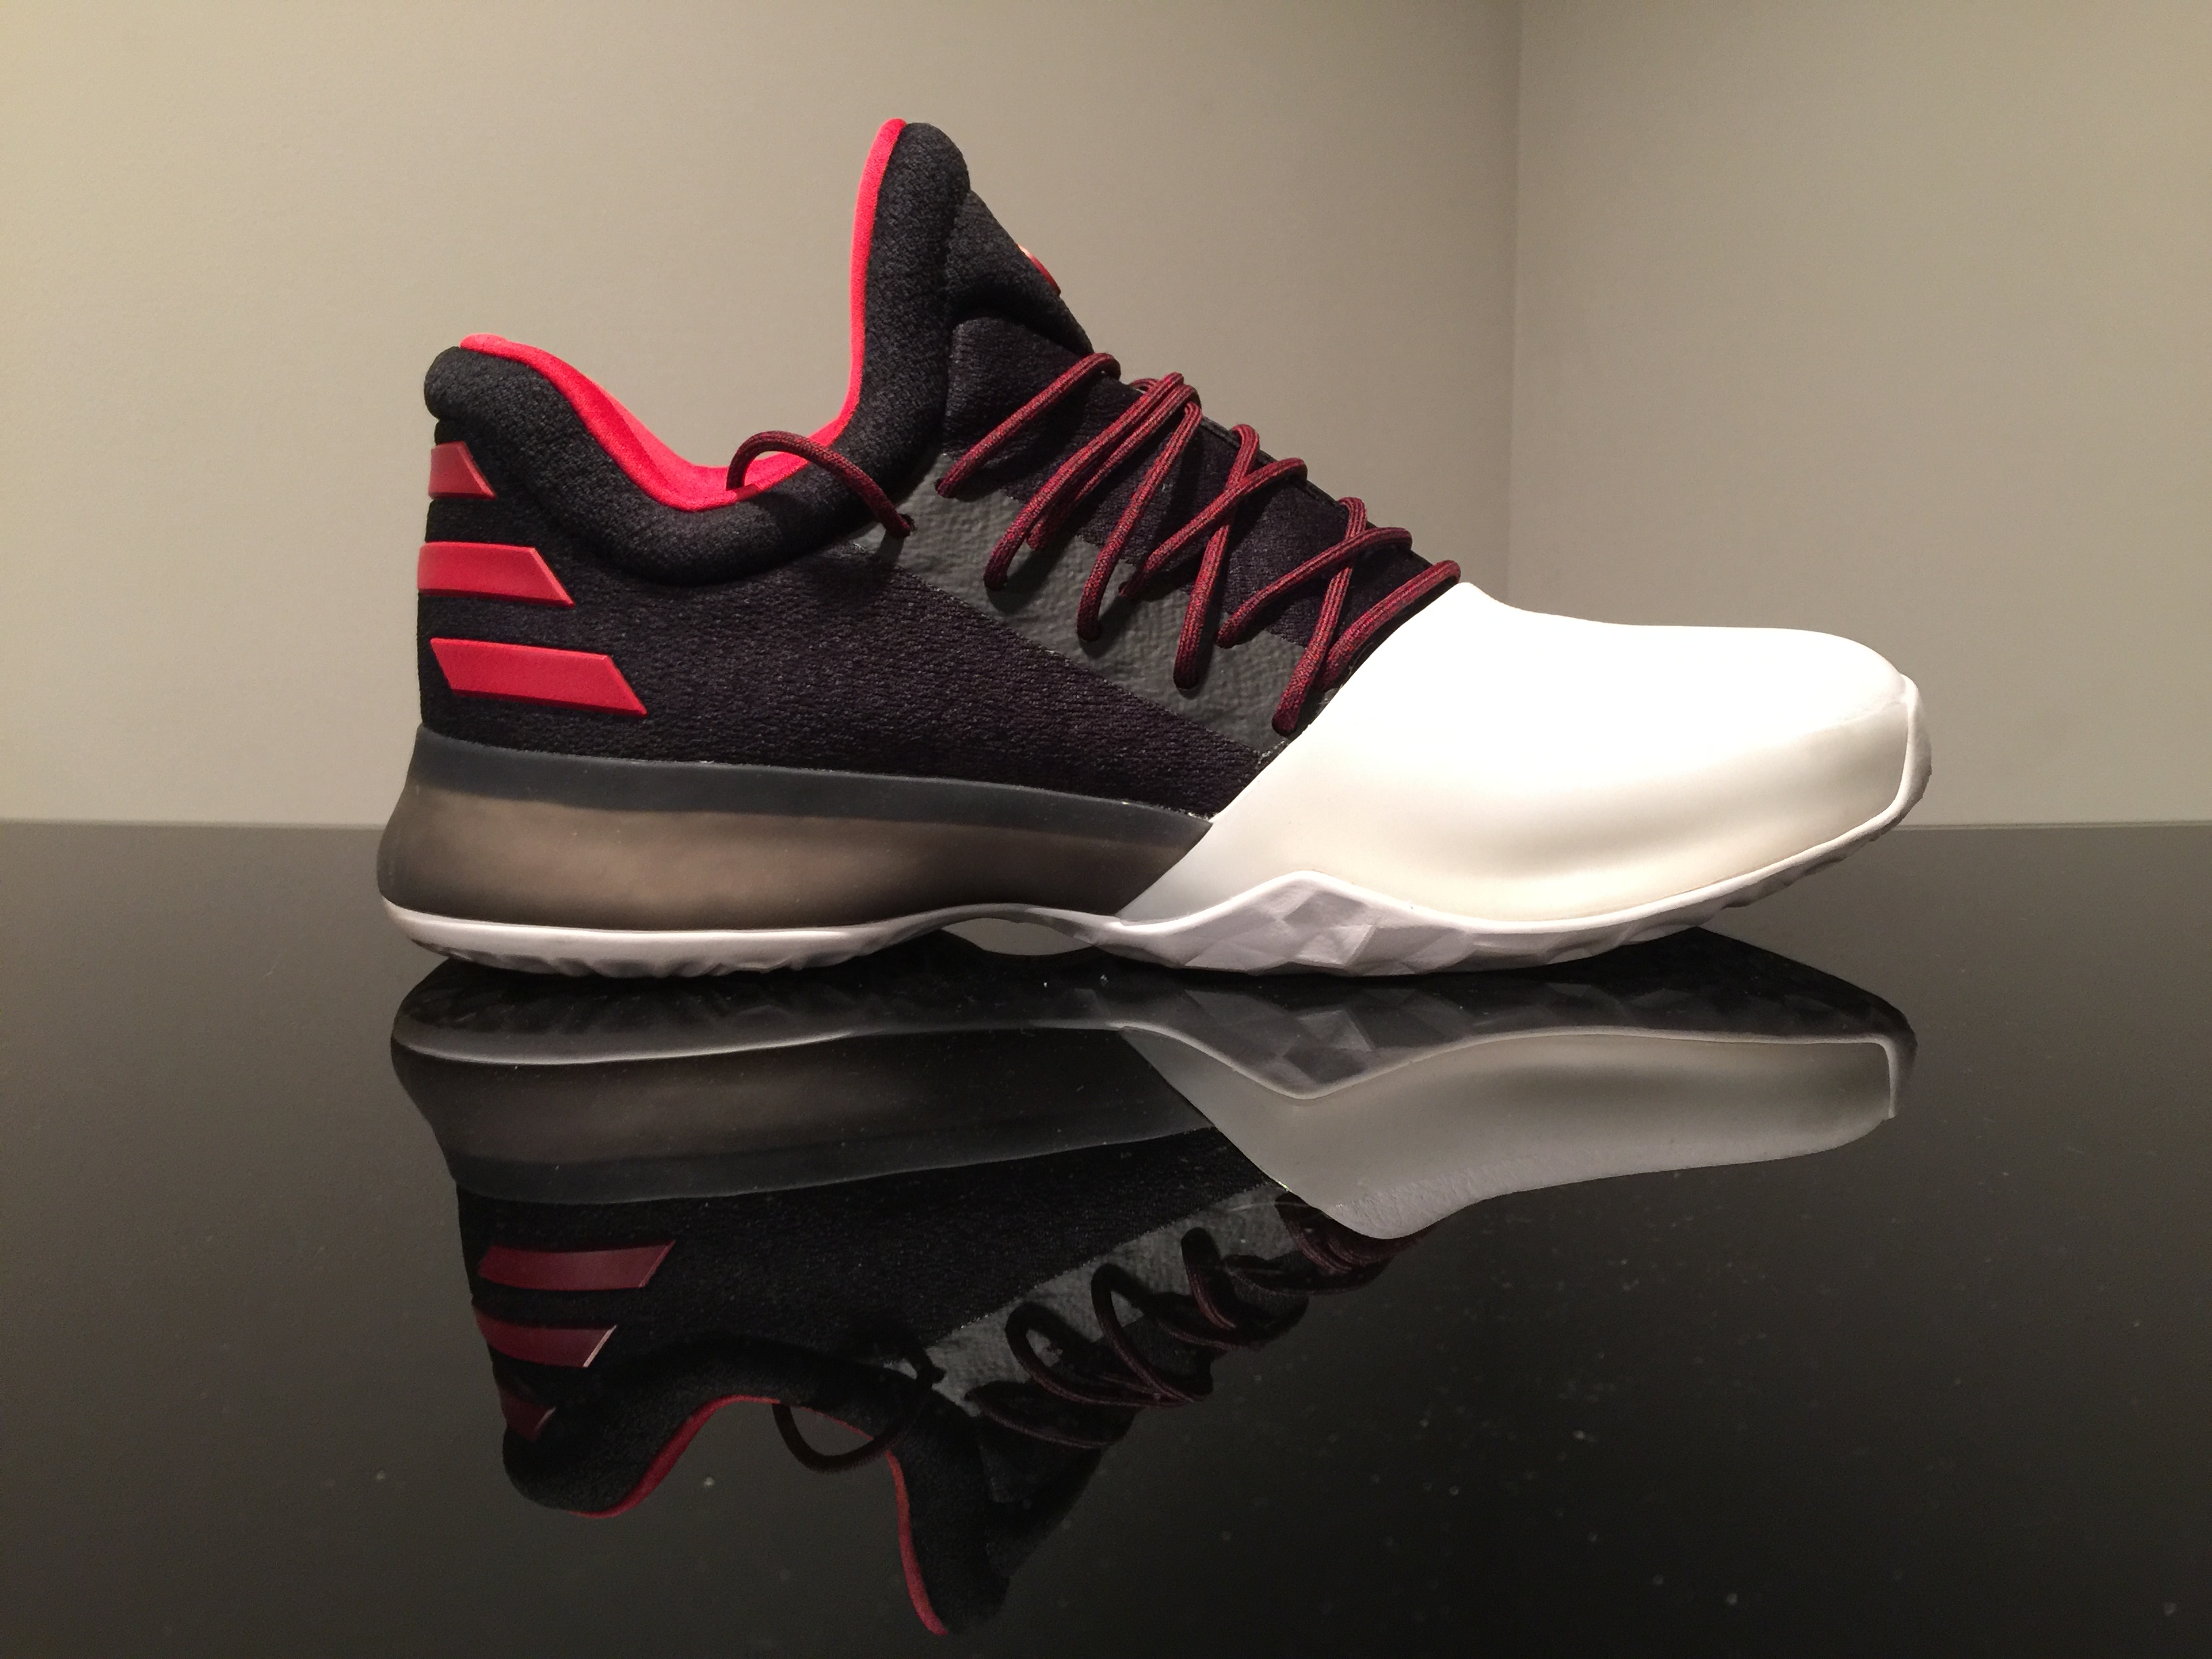 8c8a02289d51 adidas Harden Vol. 1 Performance Review